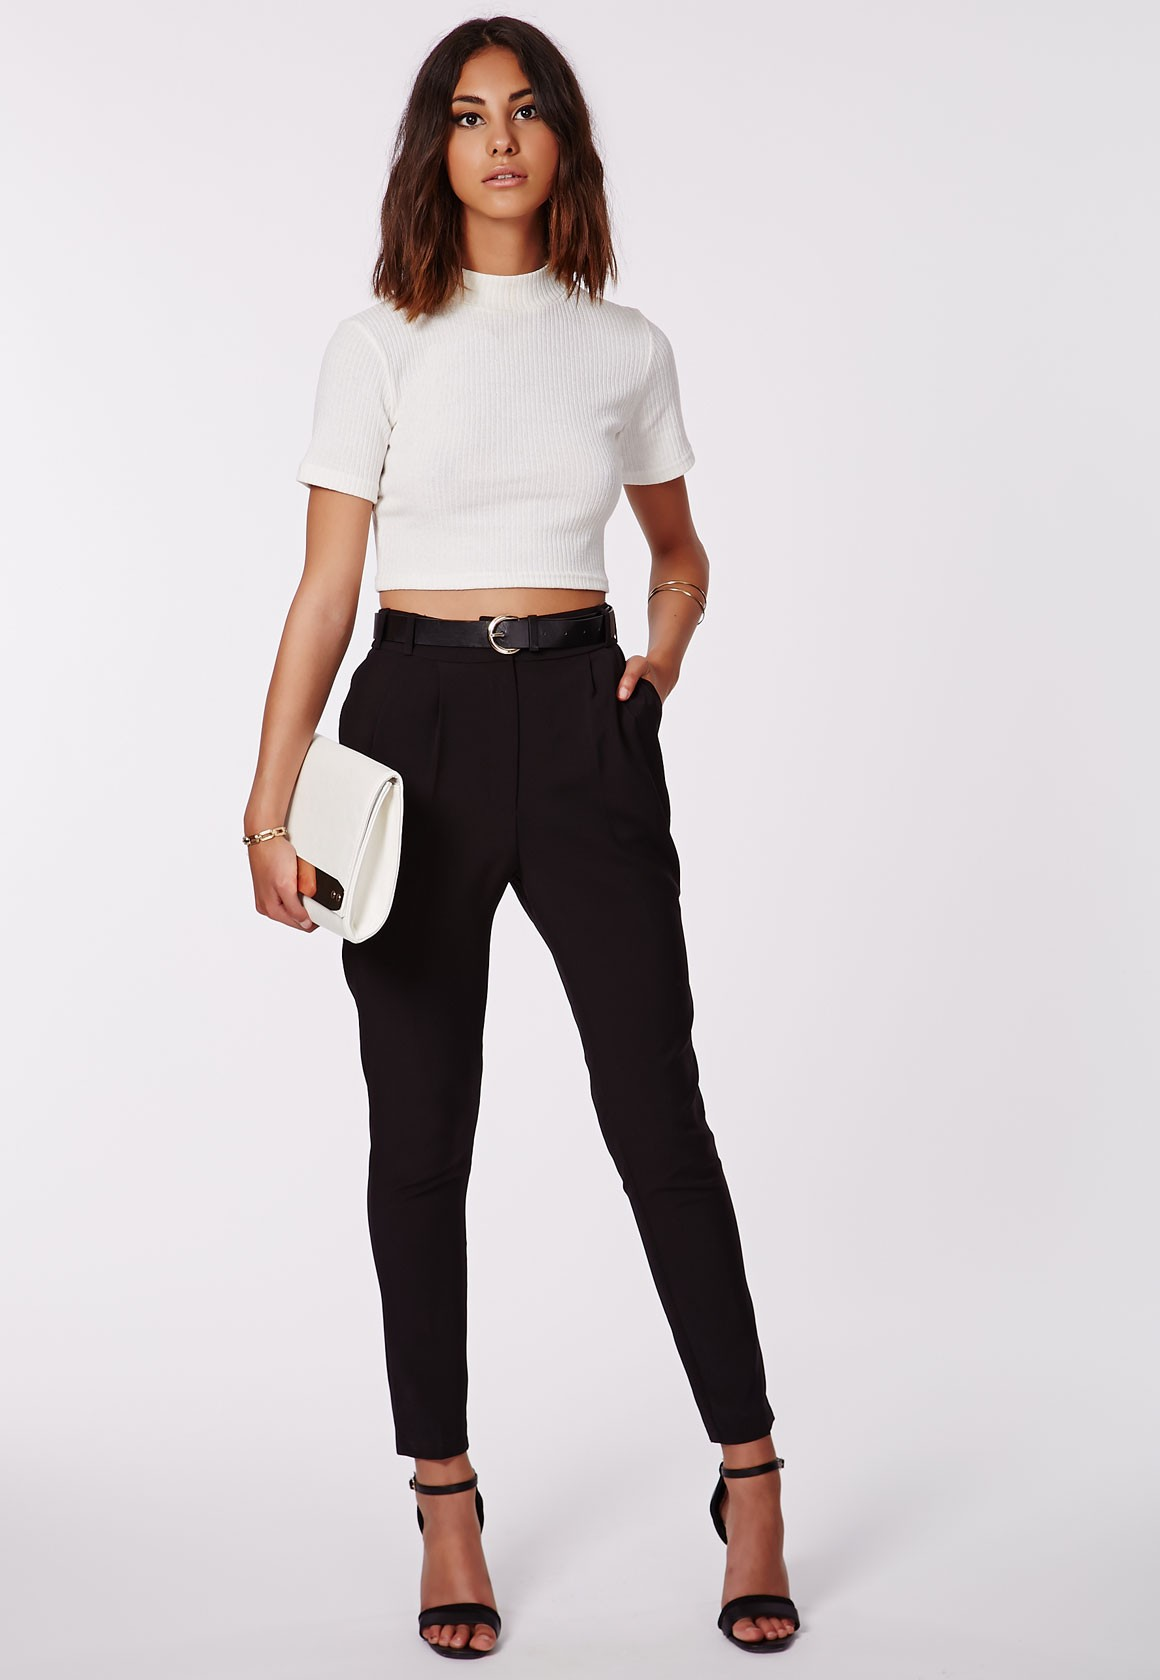 high-waist-black-trousers